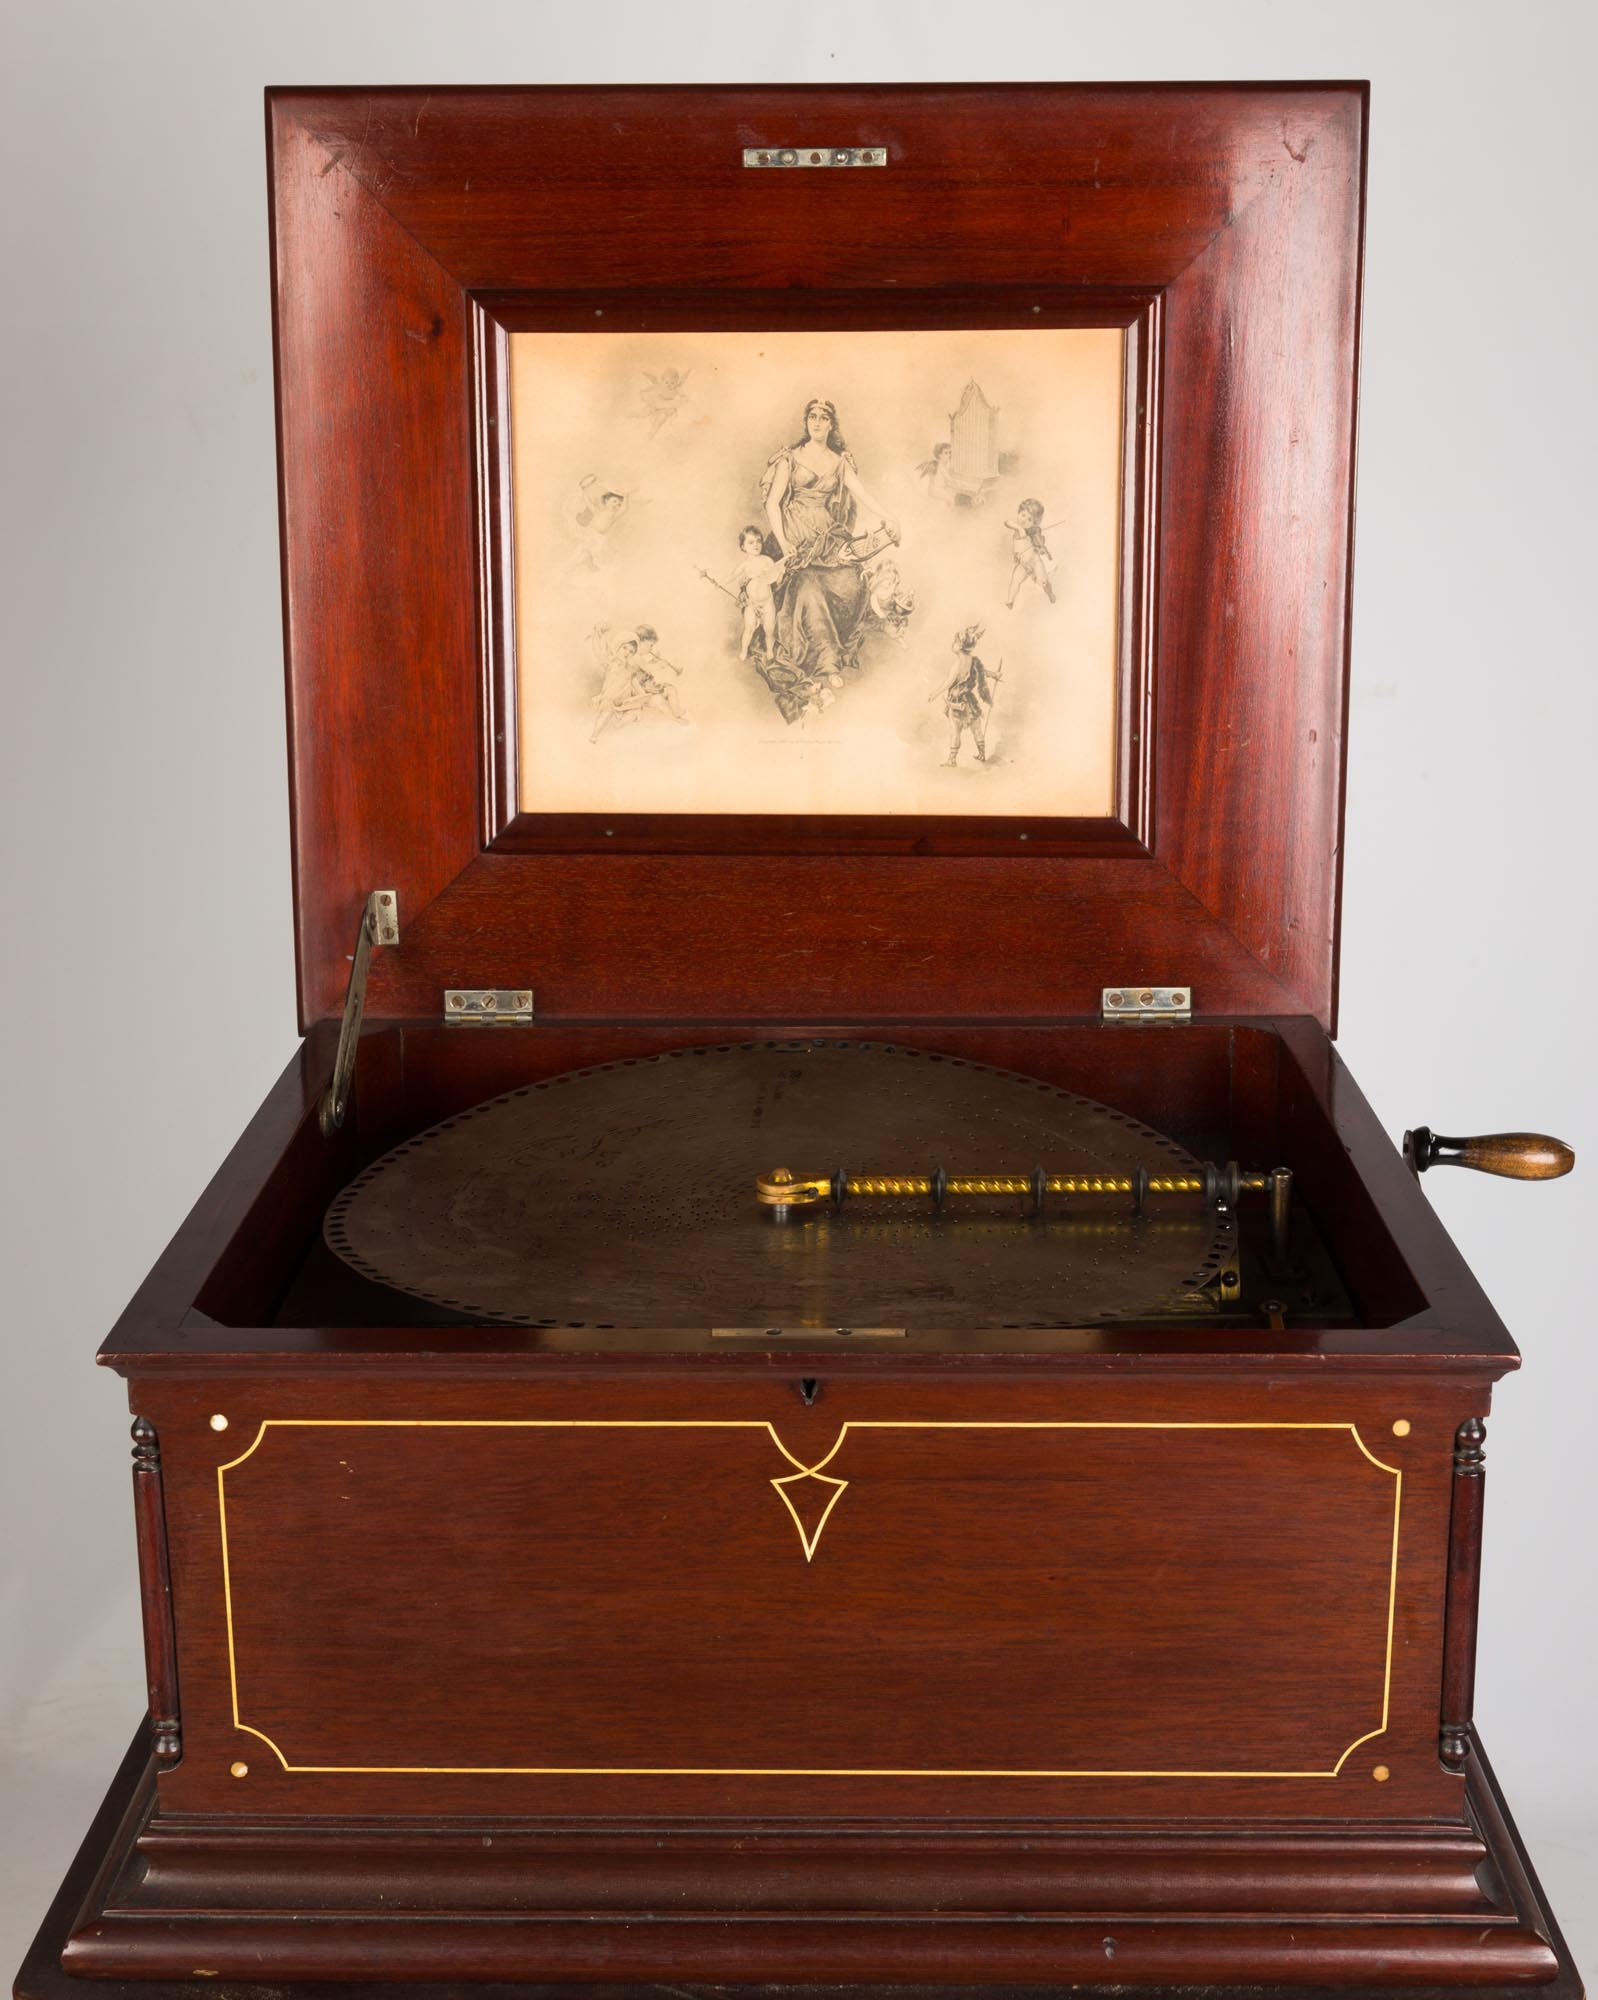 "Lot 217 - Regina Double Comb Disc Music Box & Stand. circa 1900. (33) 15 1/2"" disks. Inlaid mahogany case."